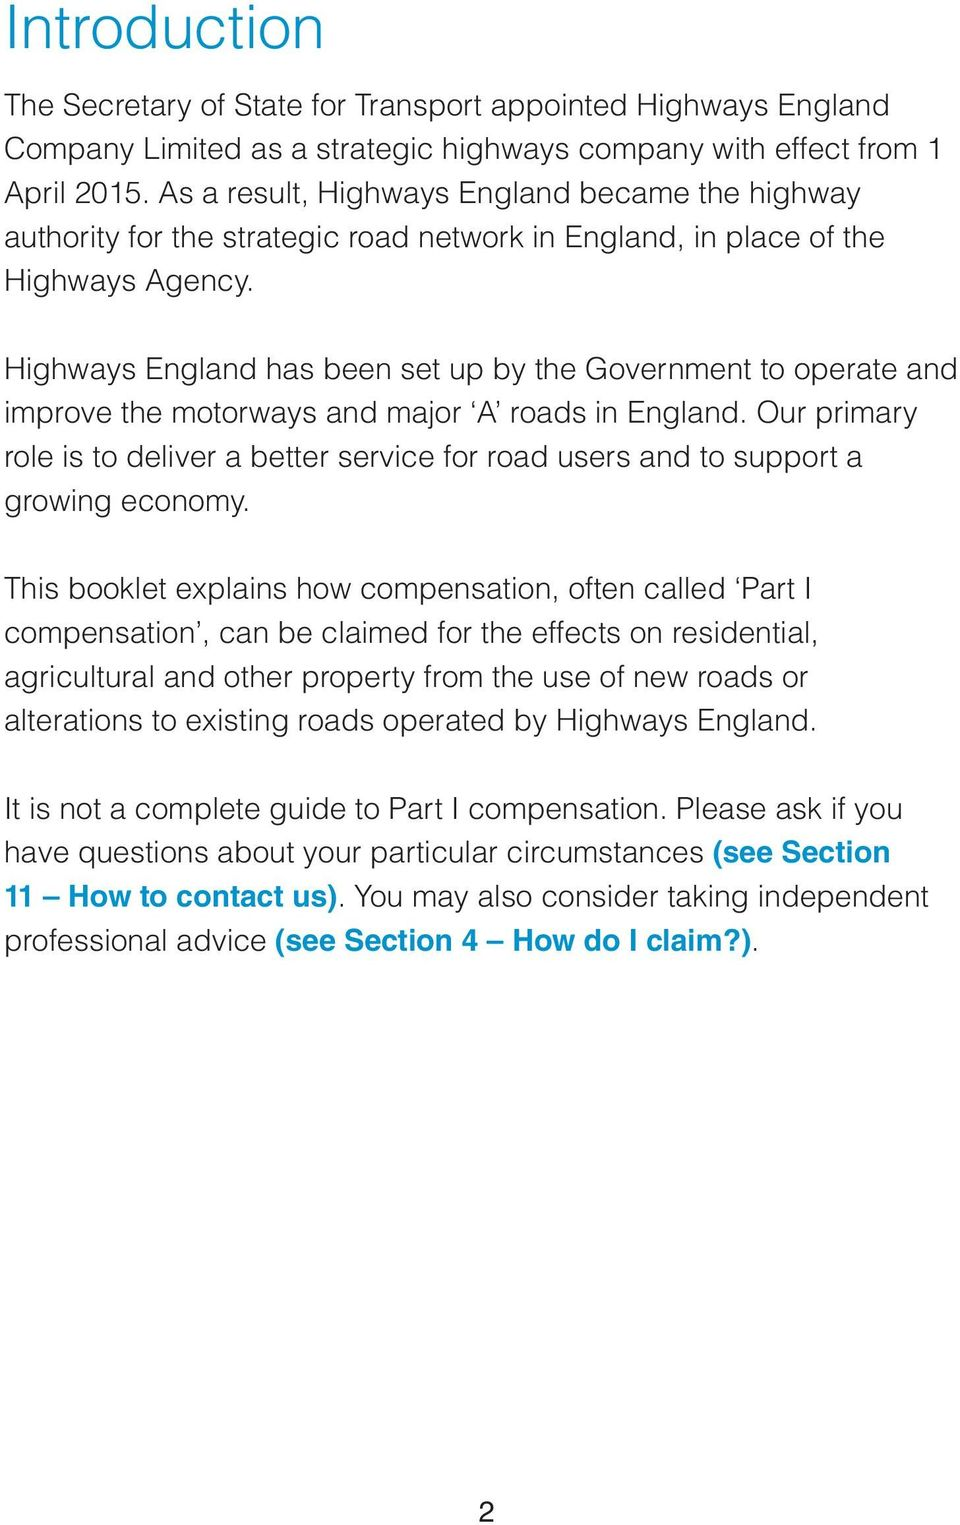 Highways England has been set up by the Government to operate and improve the motorways and major A roads in England.